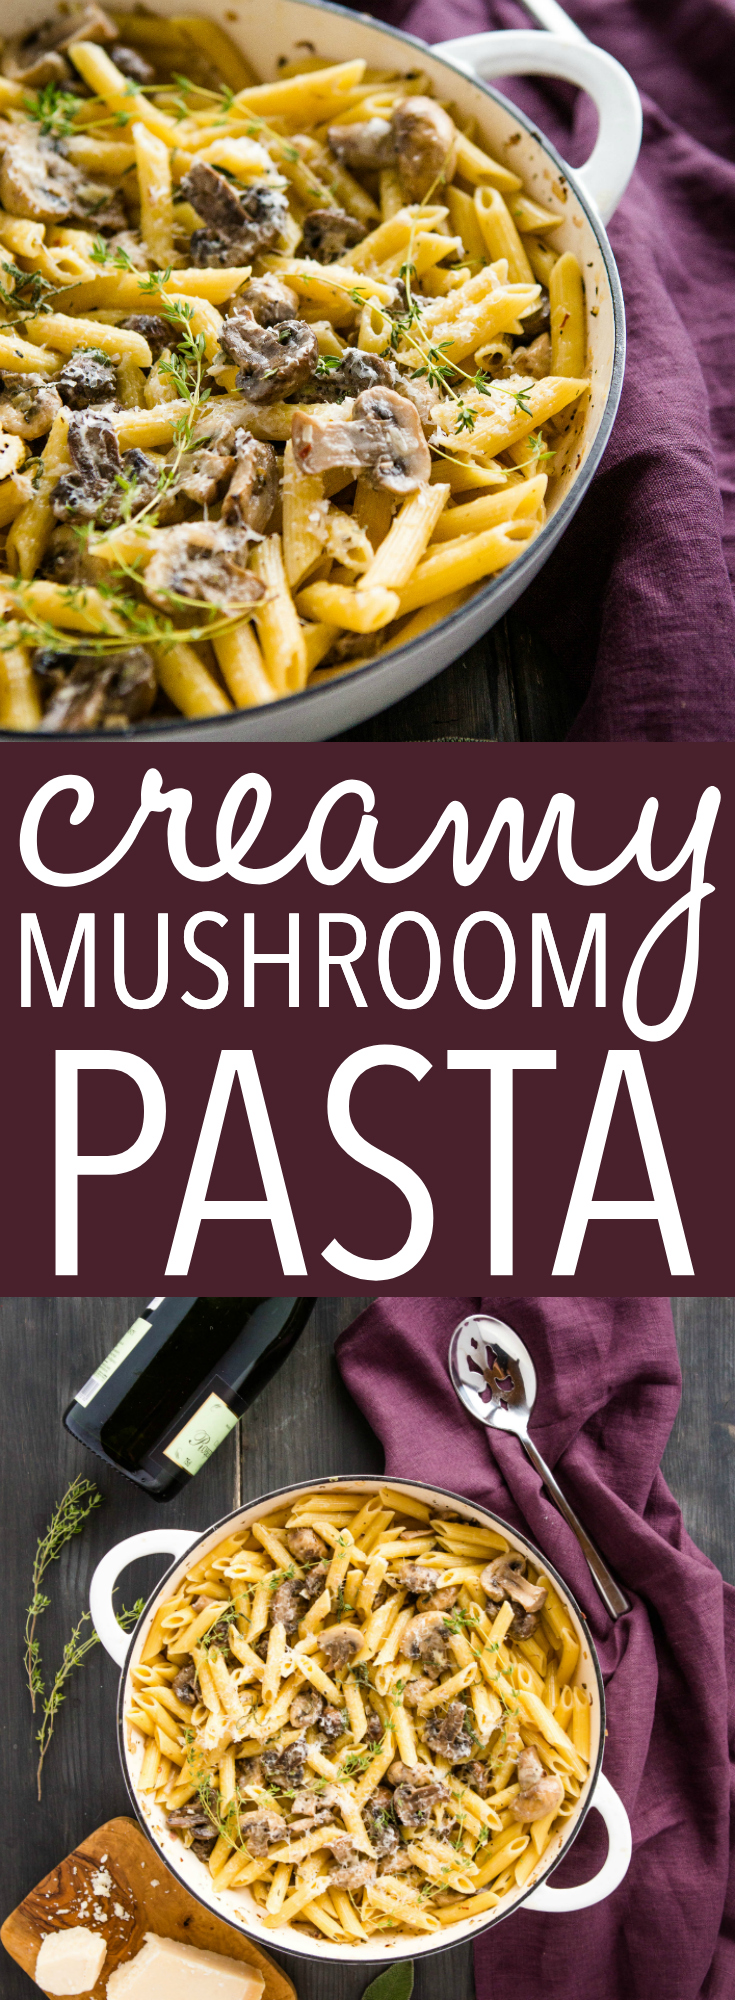 This Creamy Mushroom Champagne Pasta is a rich and delicious vegetarian main dish or side dish that's easy enough for a weeknight meal and decadent enough for a special occasion. 2 kinds of mushrooms cooked in a creamy champagne sauce with fresh herbs! Recipe from thebusybaker.ca! #champagne #pasta #creamy #mushroom #mushrooms #decadent #homemade #restaurant #herbs #easyrecipe #recipe #sauce via @busybakerblog